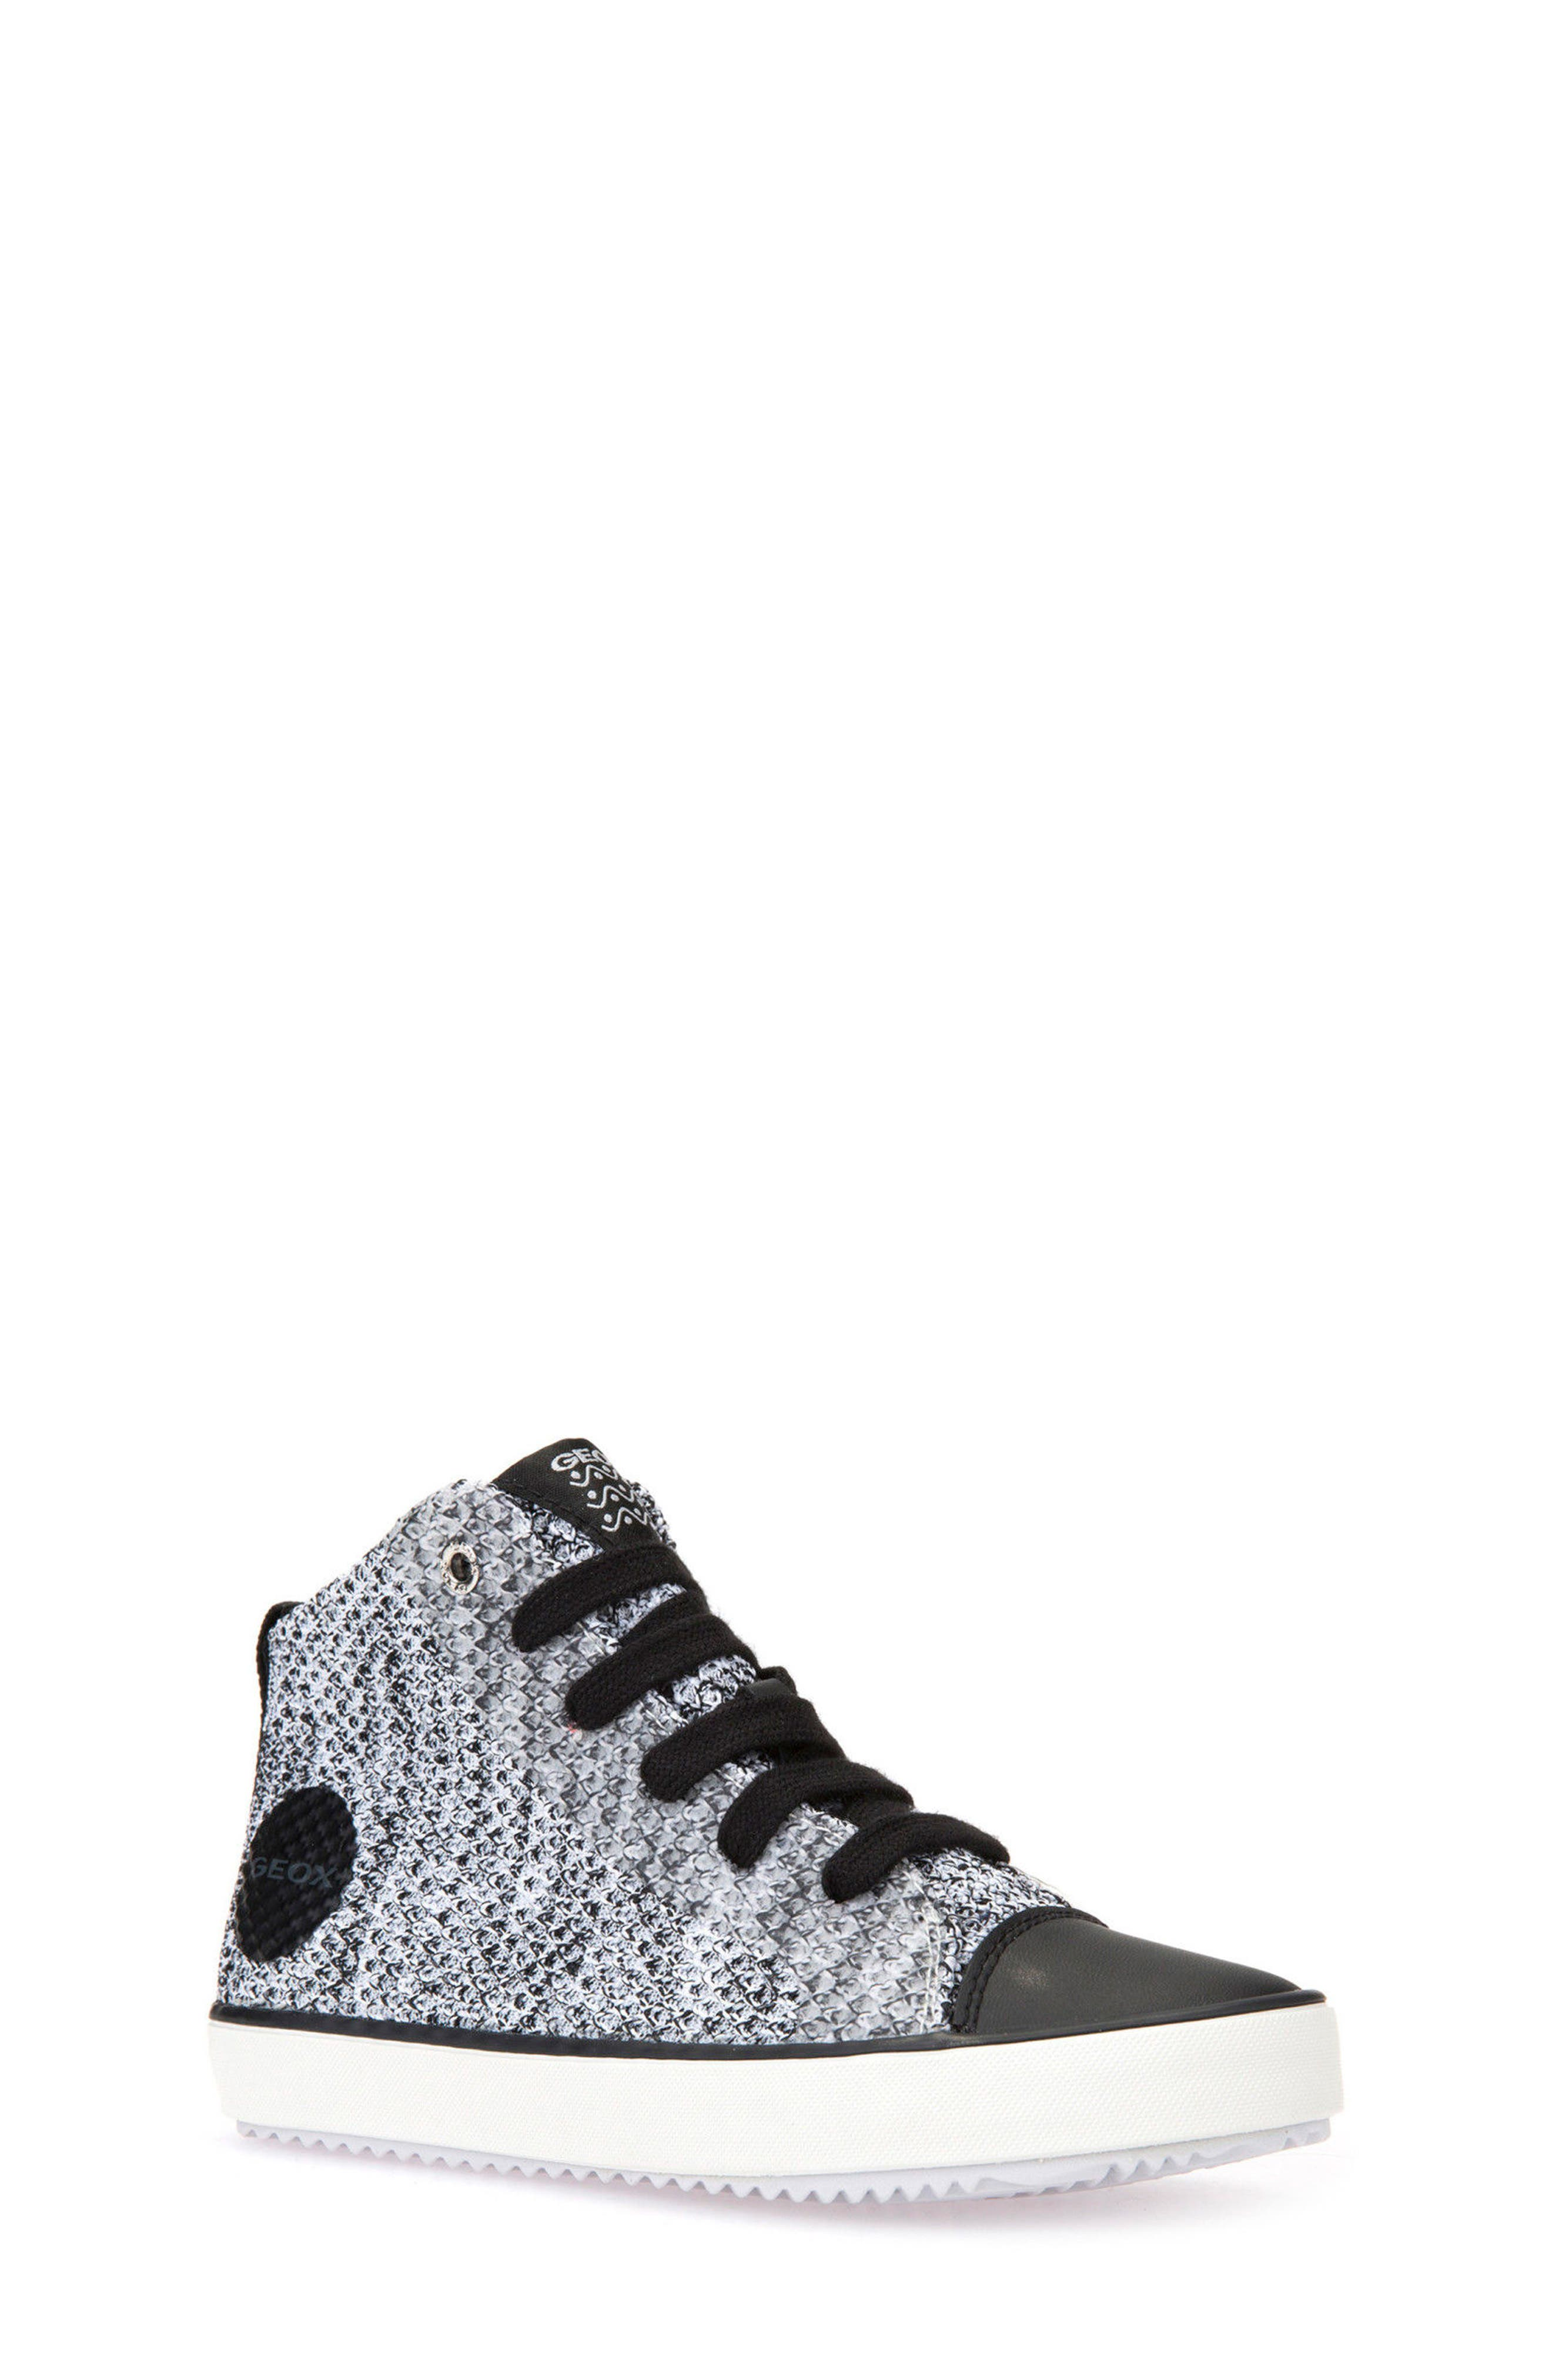 GEOX Alonisso Knit Mid Top Sneaker, Main, color, 115